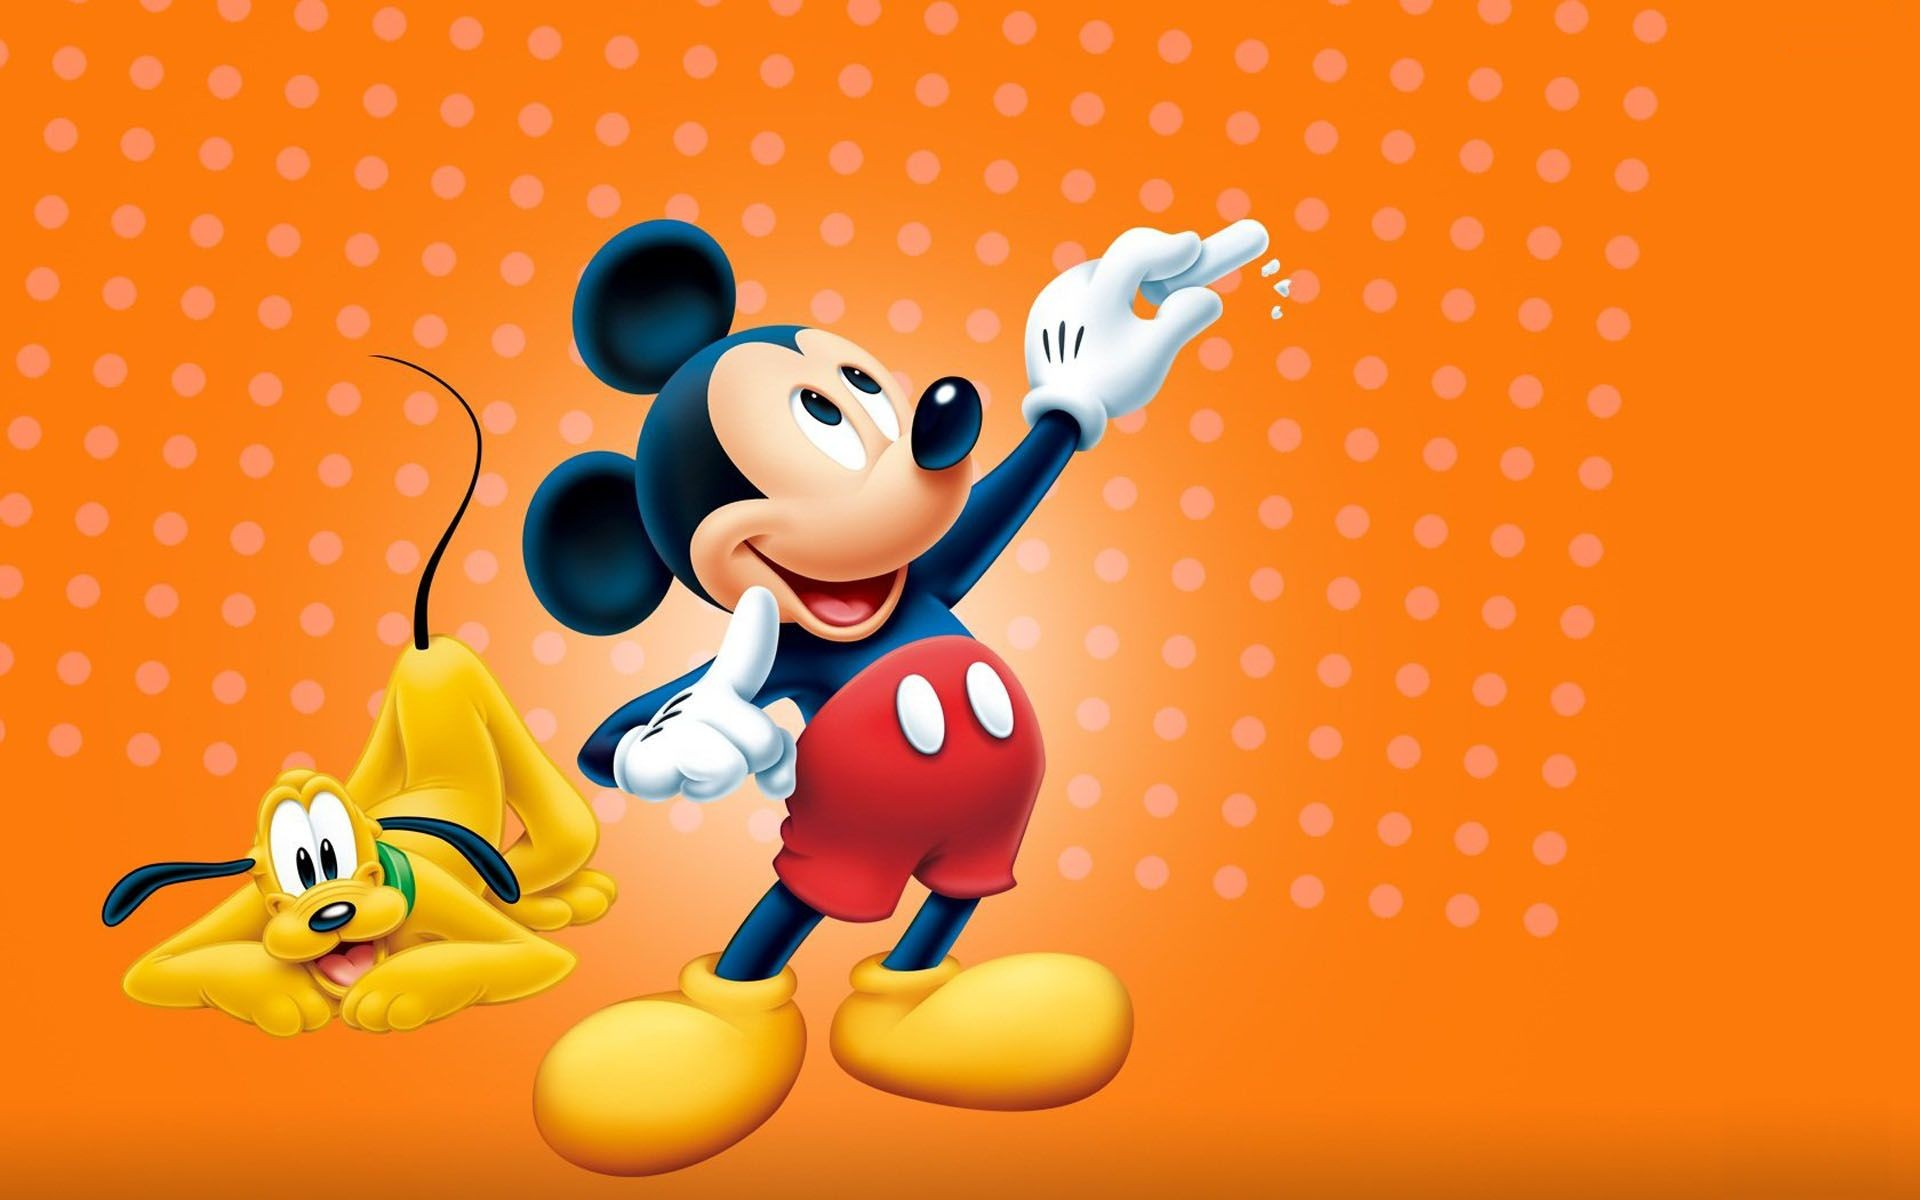 Mickey Mouse Wallpaper ① Download Free Stunning Backgrounds For